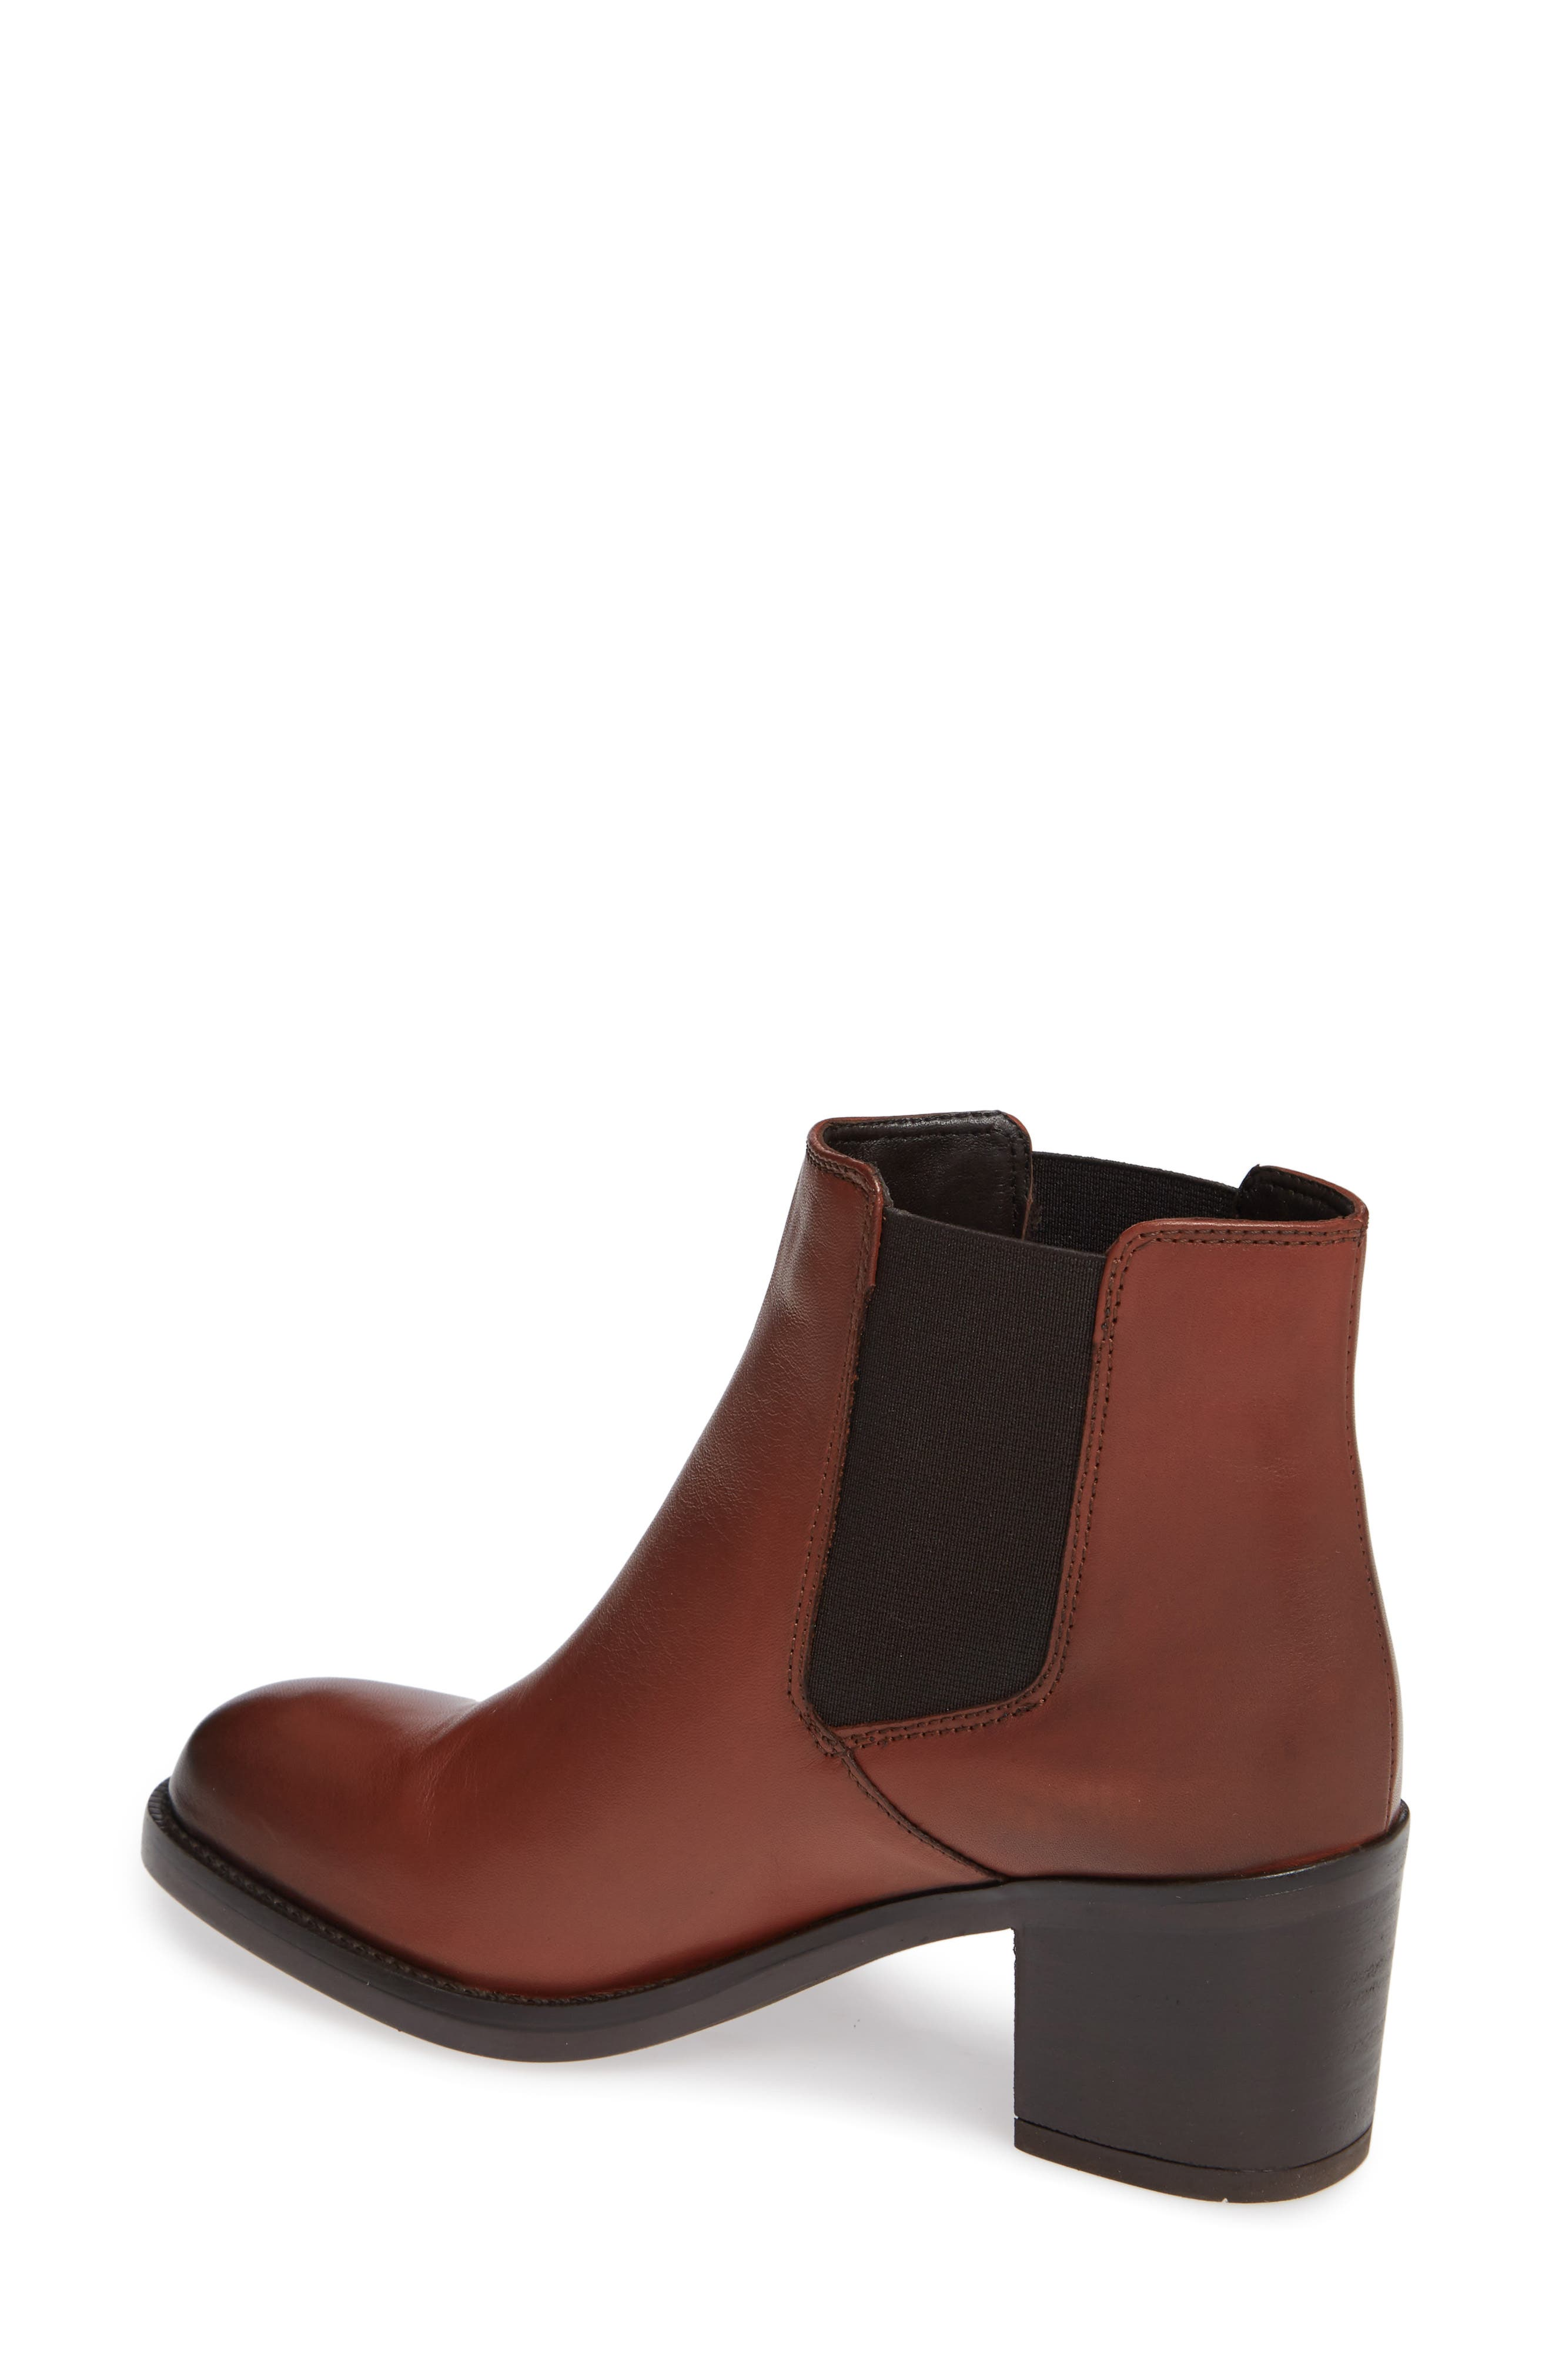 Mascarpone Bay Chelsea Boot,                             Alternate thumbnail 2, color,                             TAN LEATHER